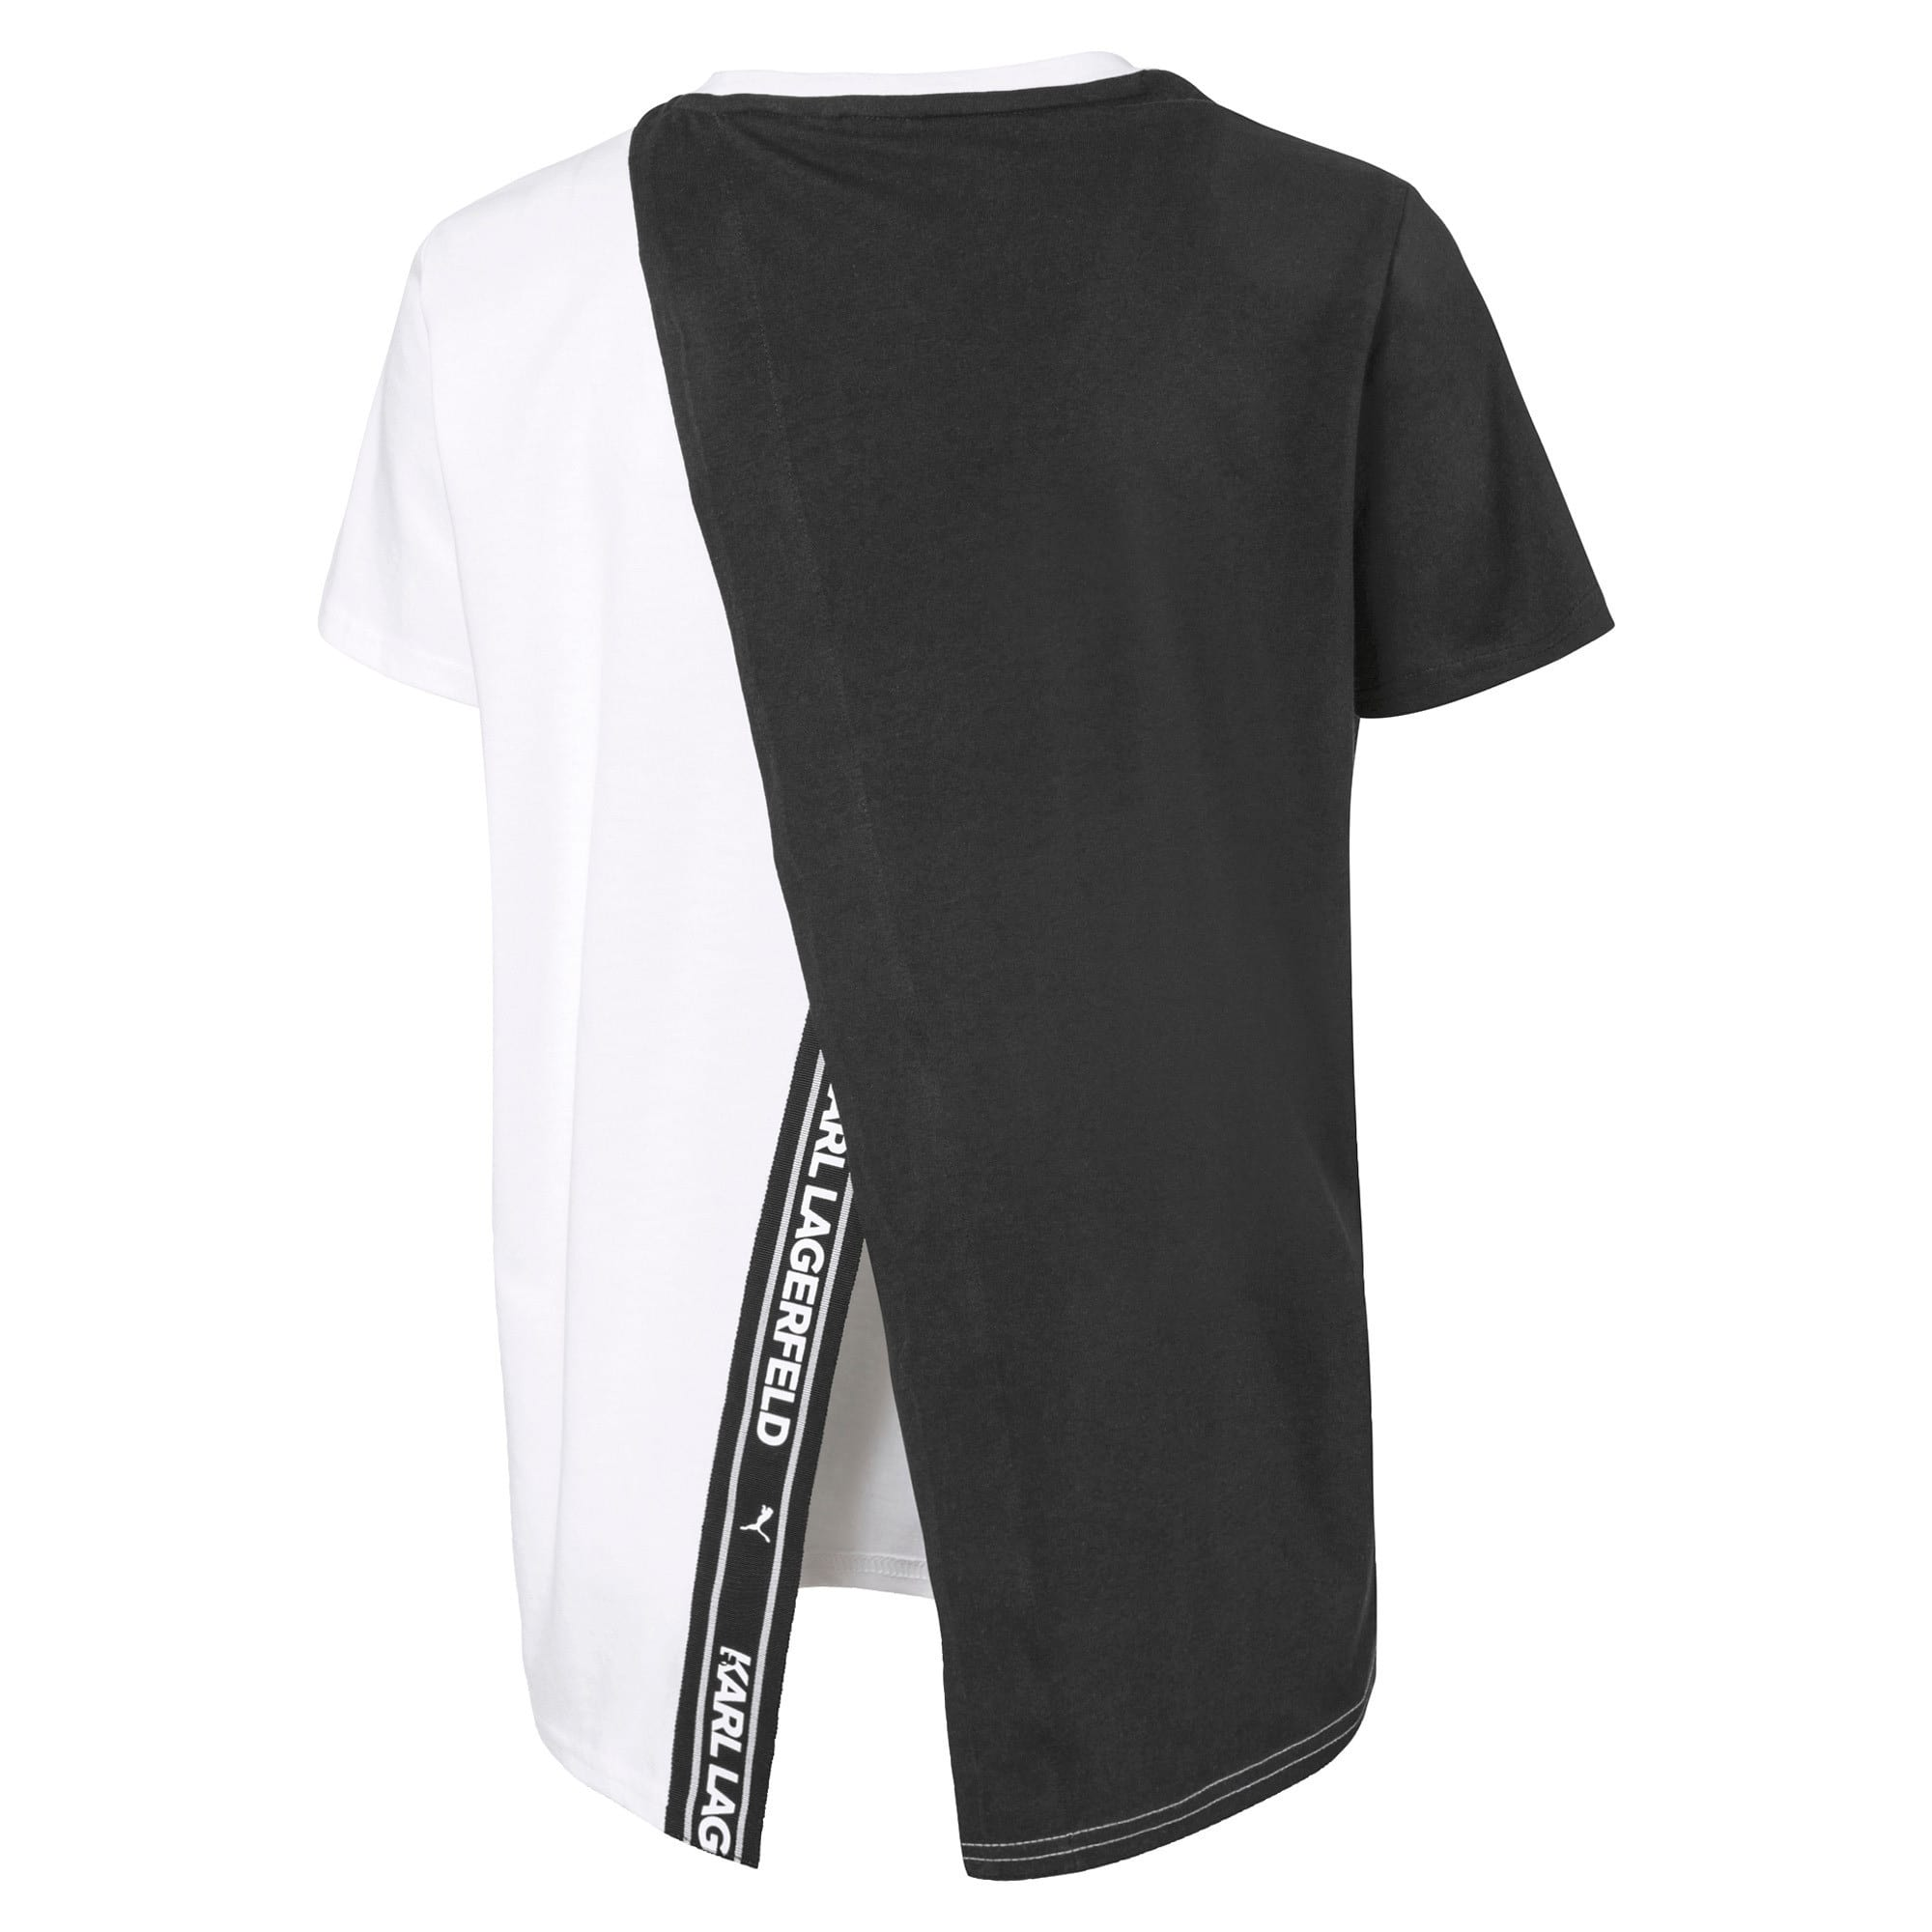 Thumbnail 2 of PUMA x KARL LAGERFELD Women's Open Back Tee, Puma Black, medium